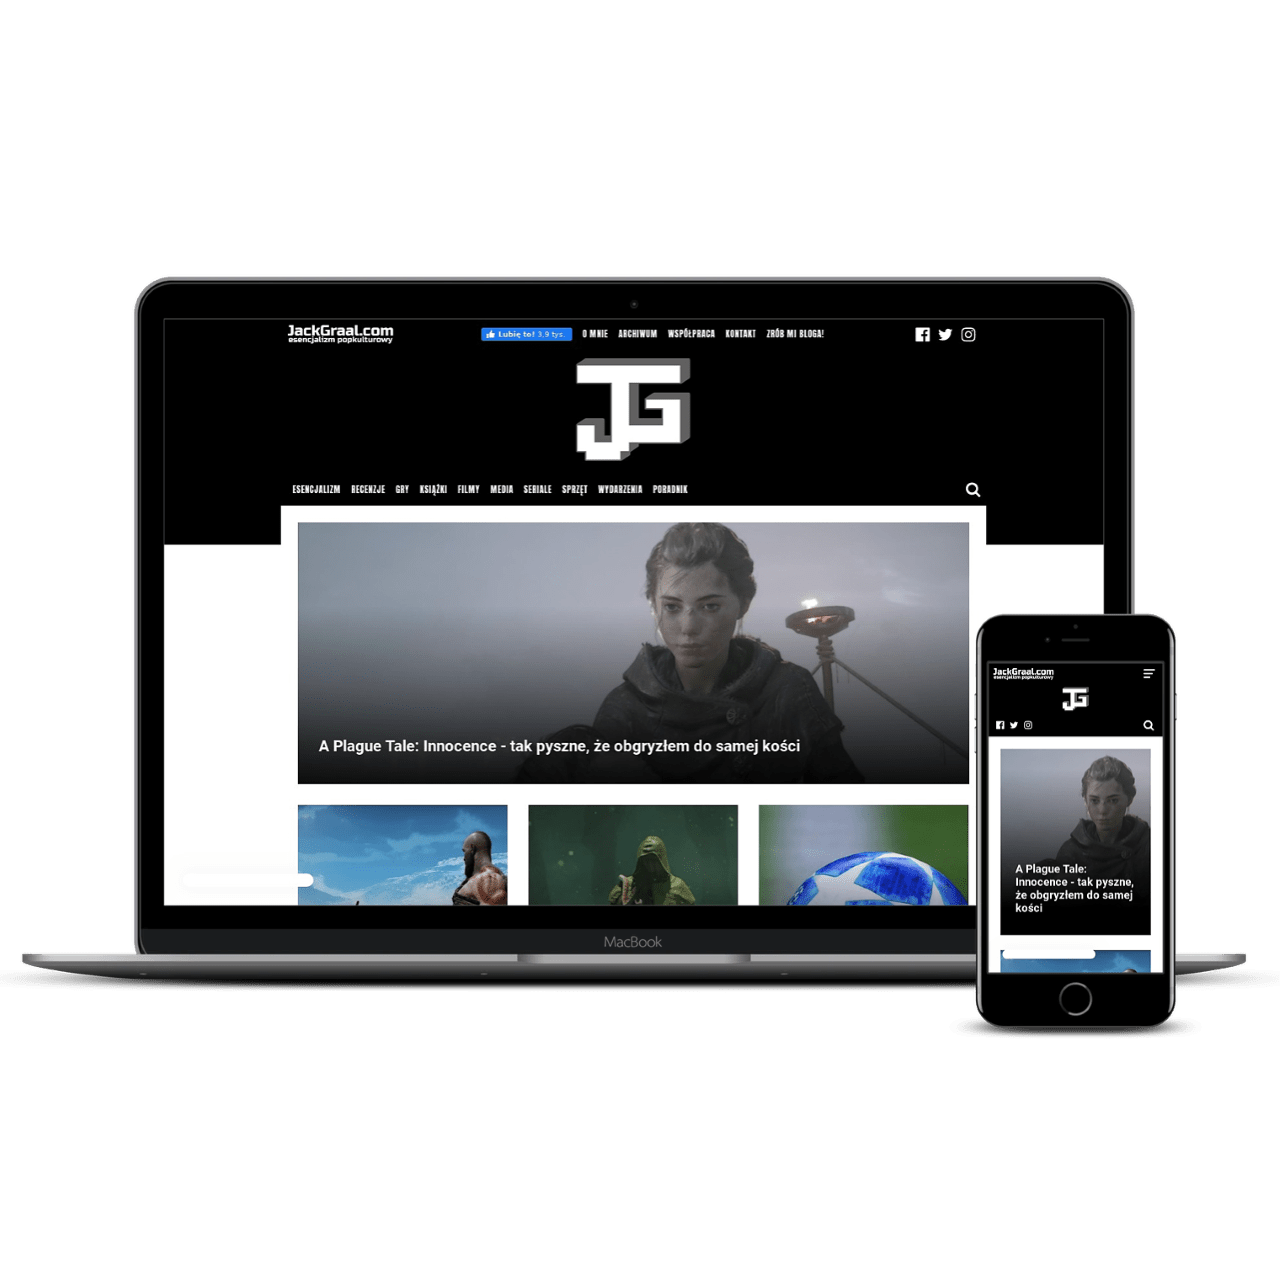 jackgraal.com website